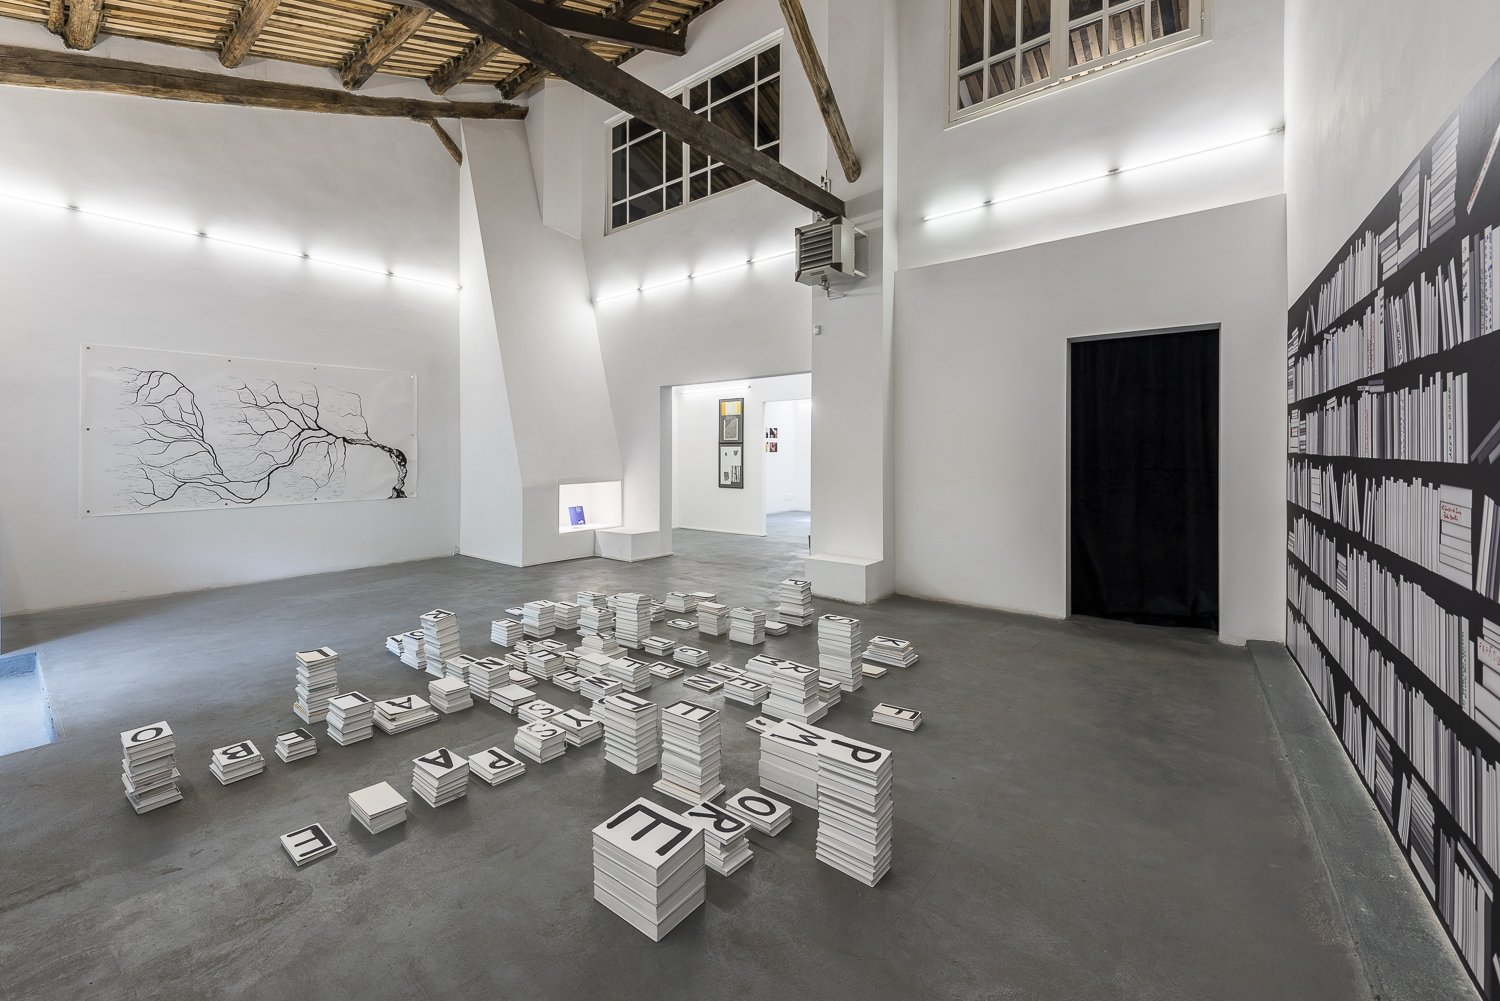 About Books, exhibition view, 2018. Photo by Sebastiano Luciano, courtesy AlbumArte